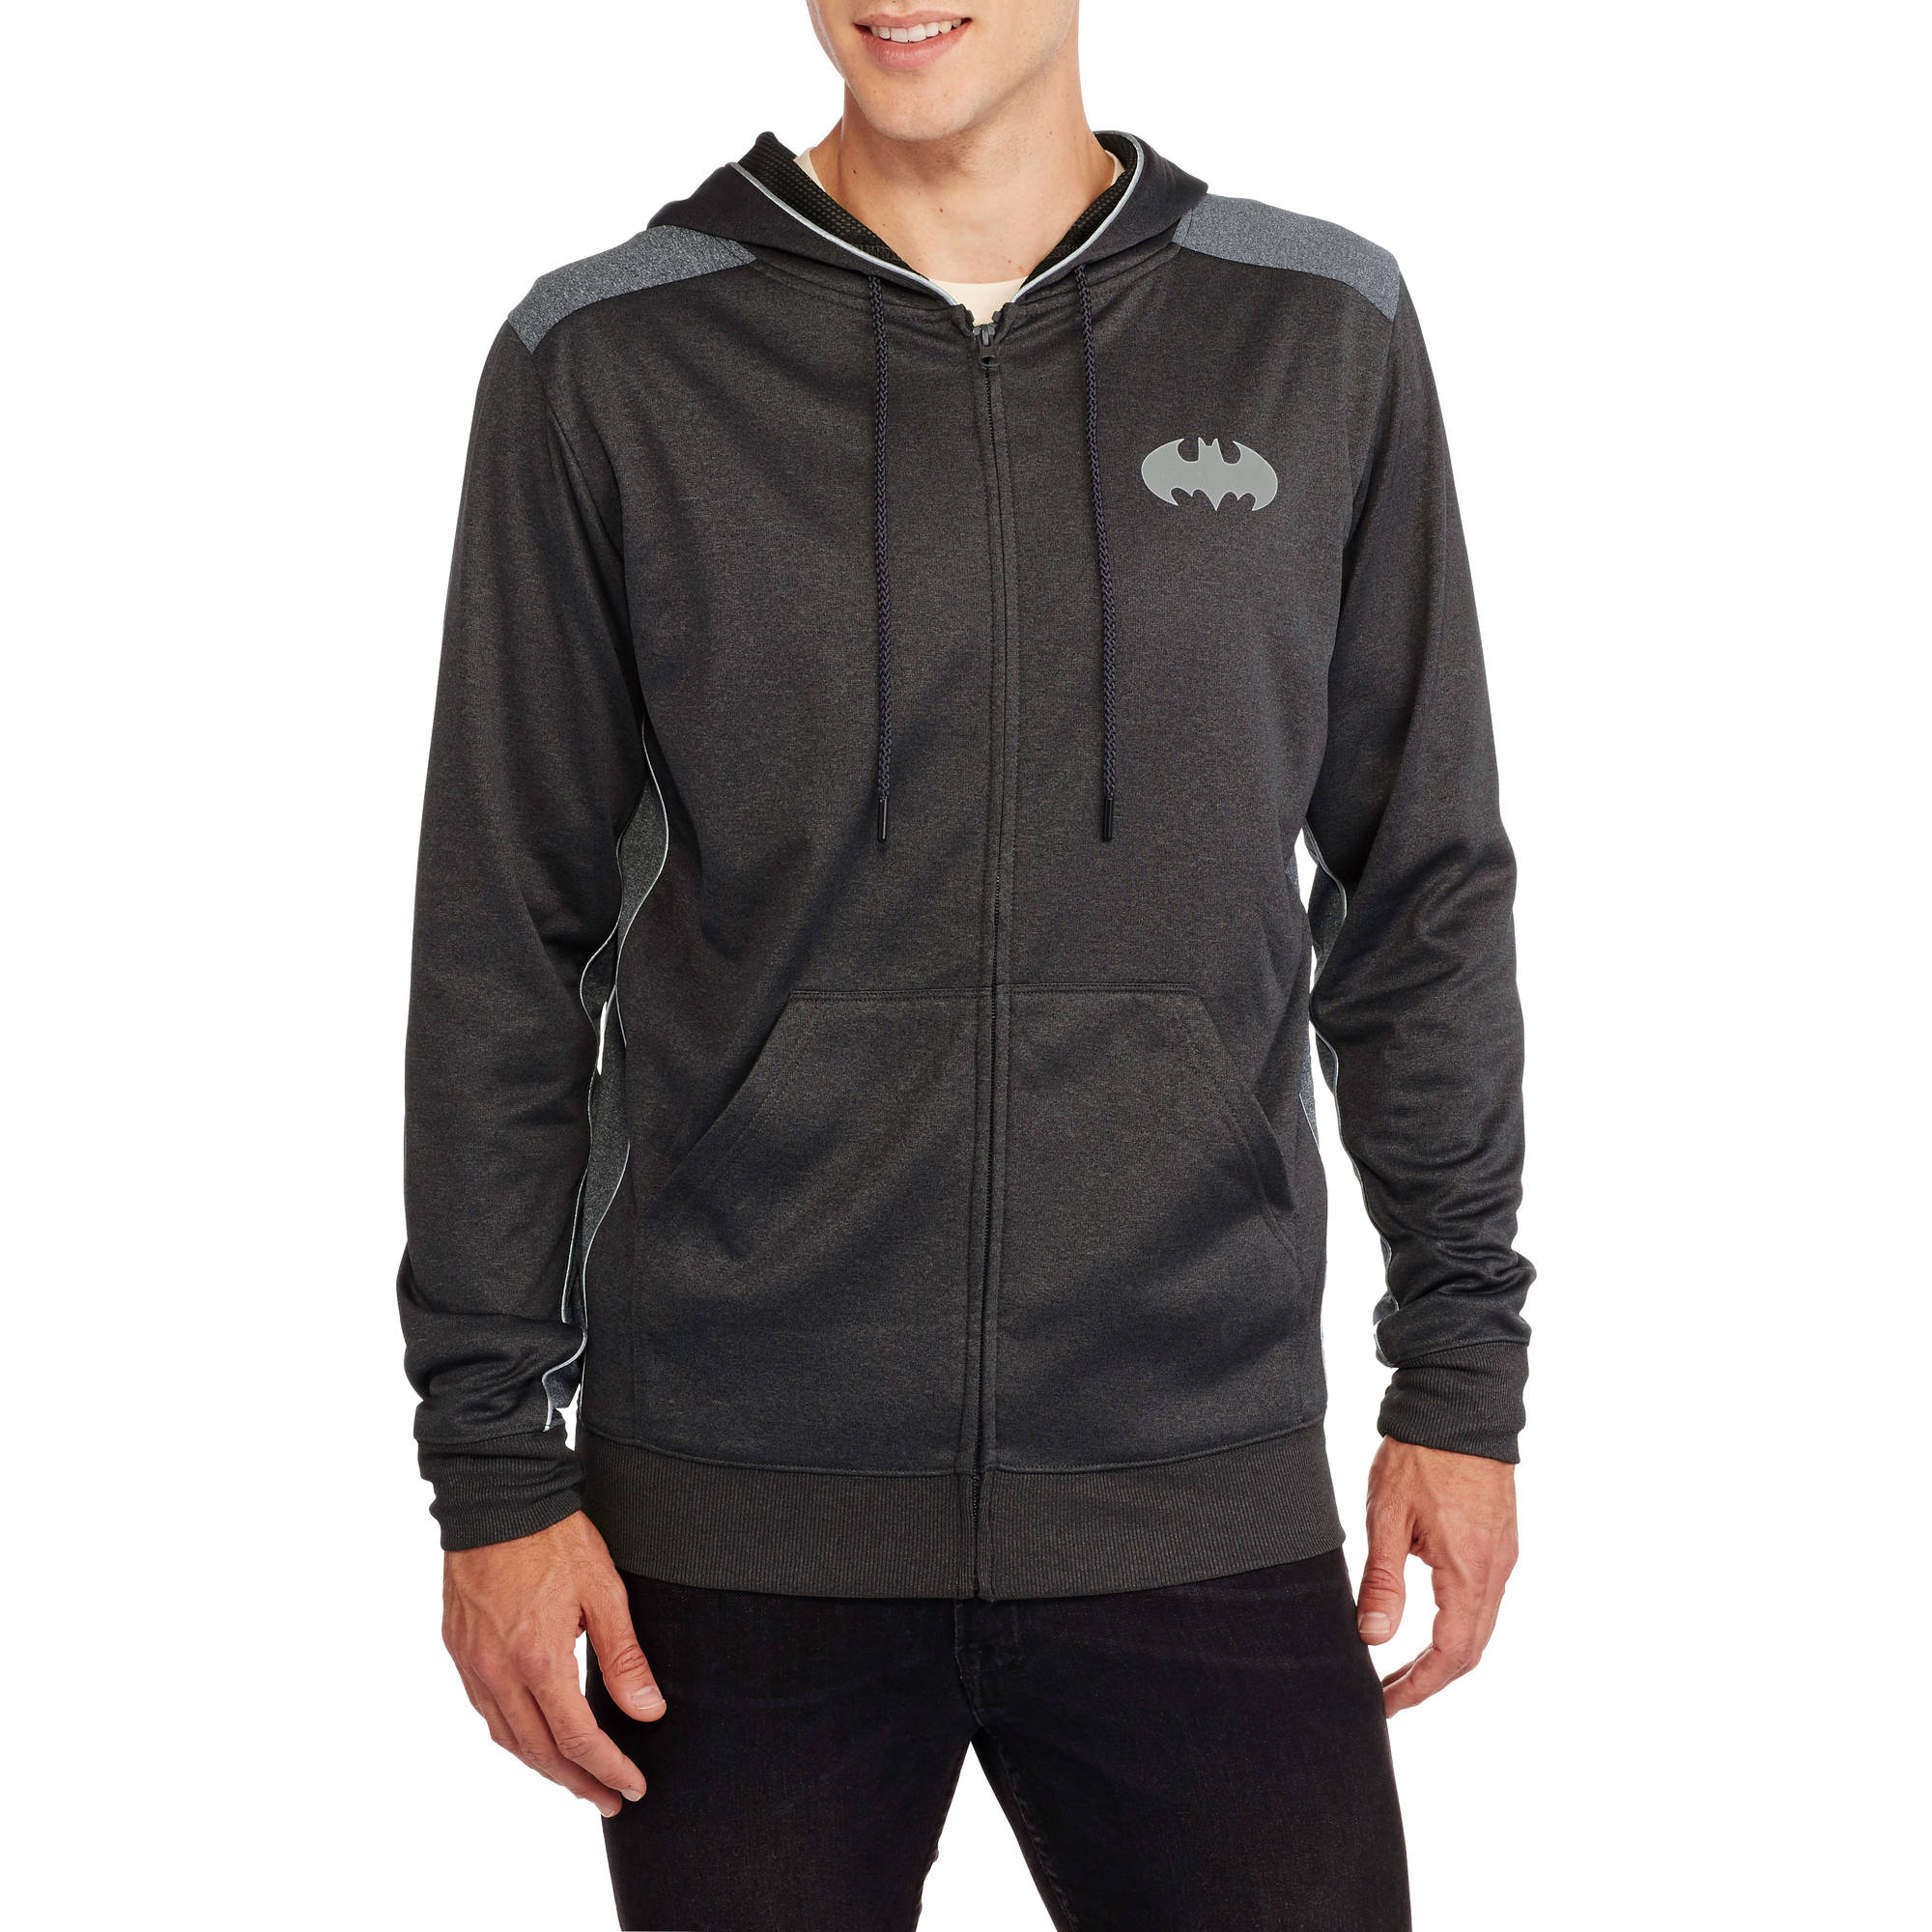 Batman Big Men's Cationic Reflective Poly Hoodie, 2XL by